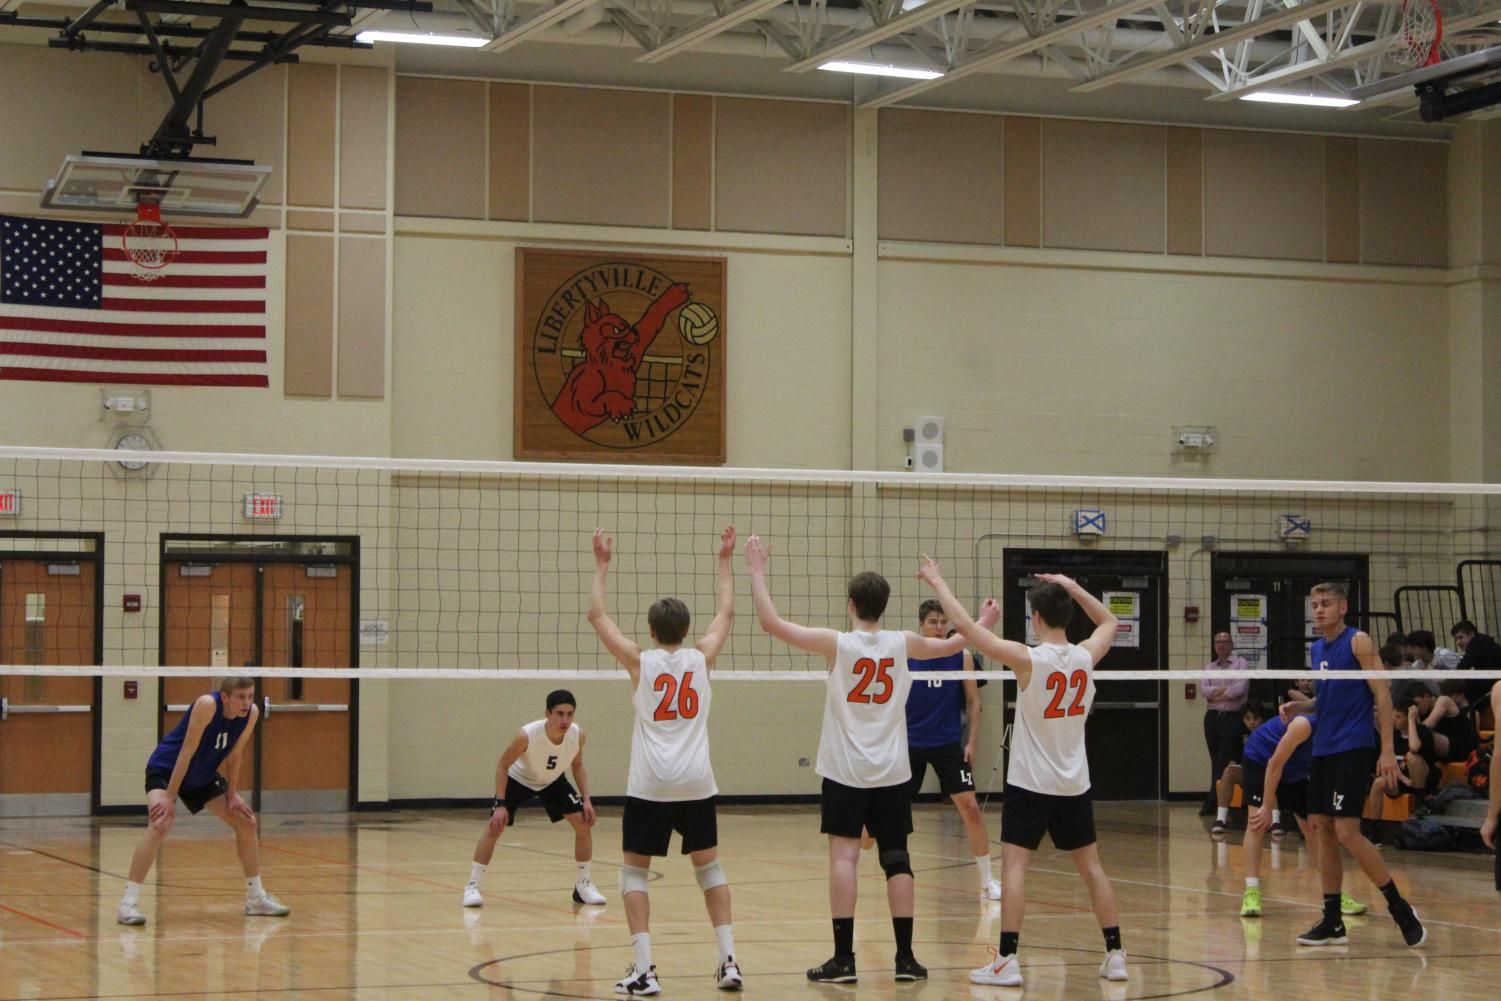 Chris+Mack%2C+Brendan+Duffy%2C+and+Weick+get+set+as+their+teammate+prepares+to+serve.%0A